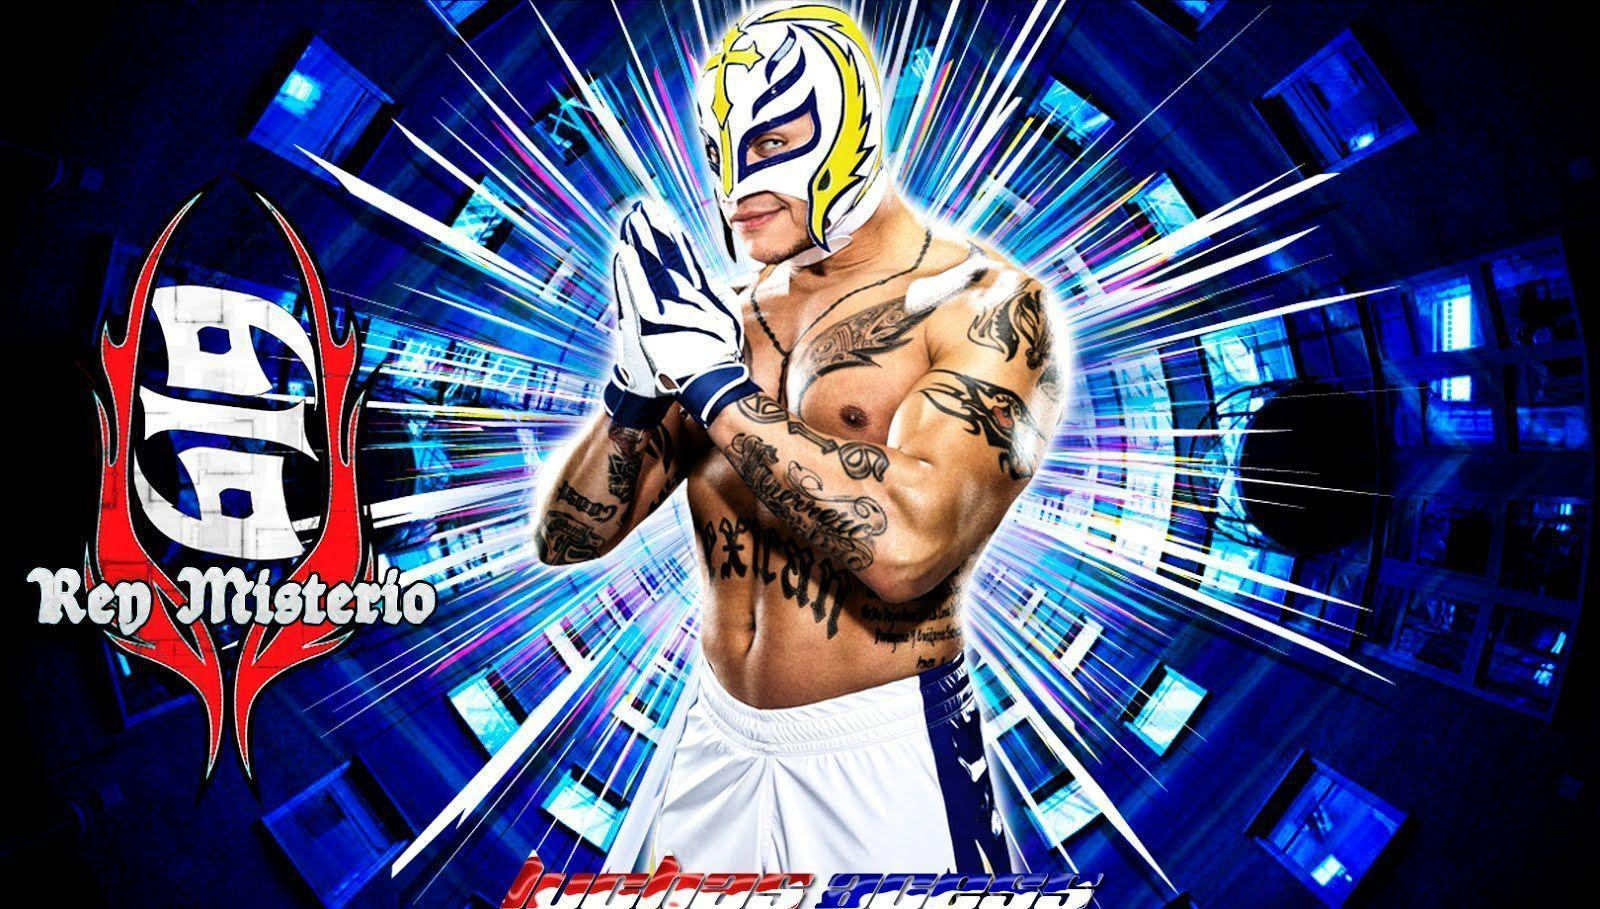 Rey misterio wallpapers 2016 wallpaper cave - Wwe 619 images ...